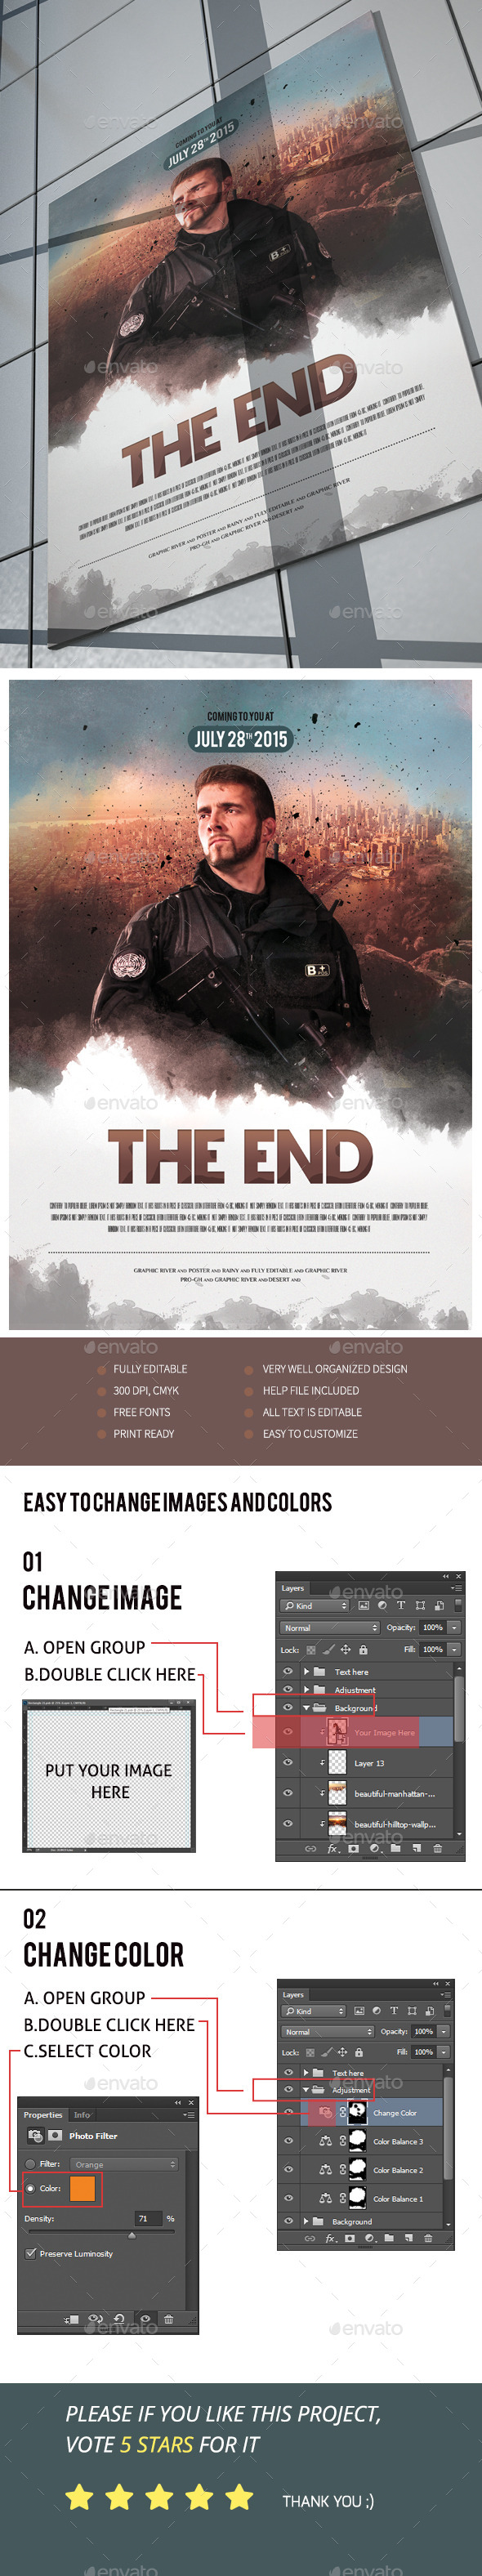 The End Movie Poster/Flyer IV - Events Flyers